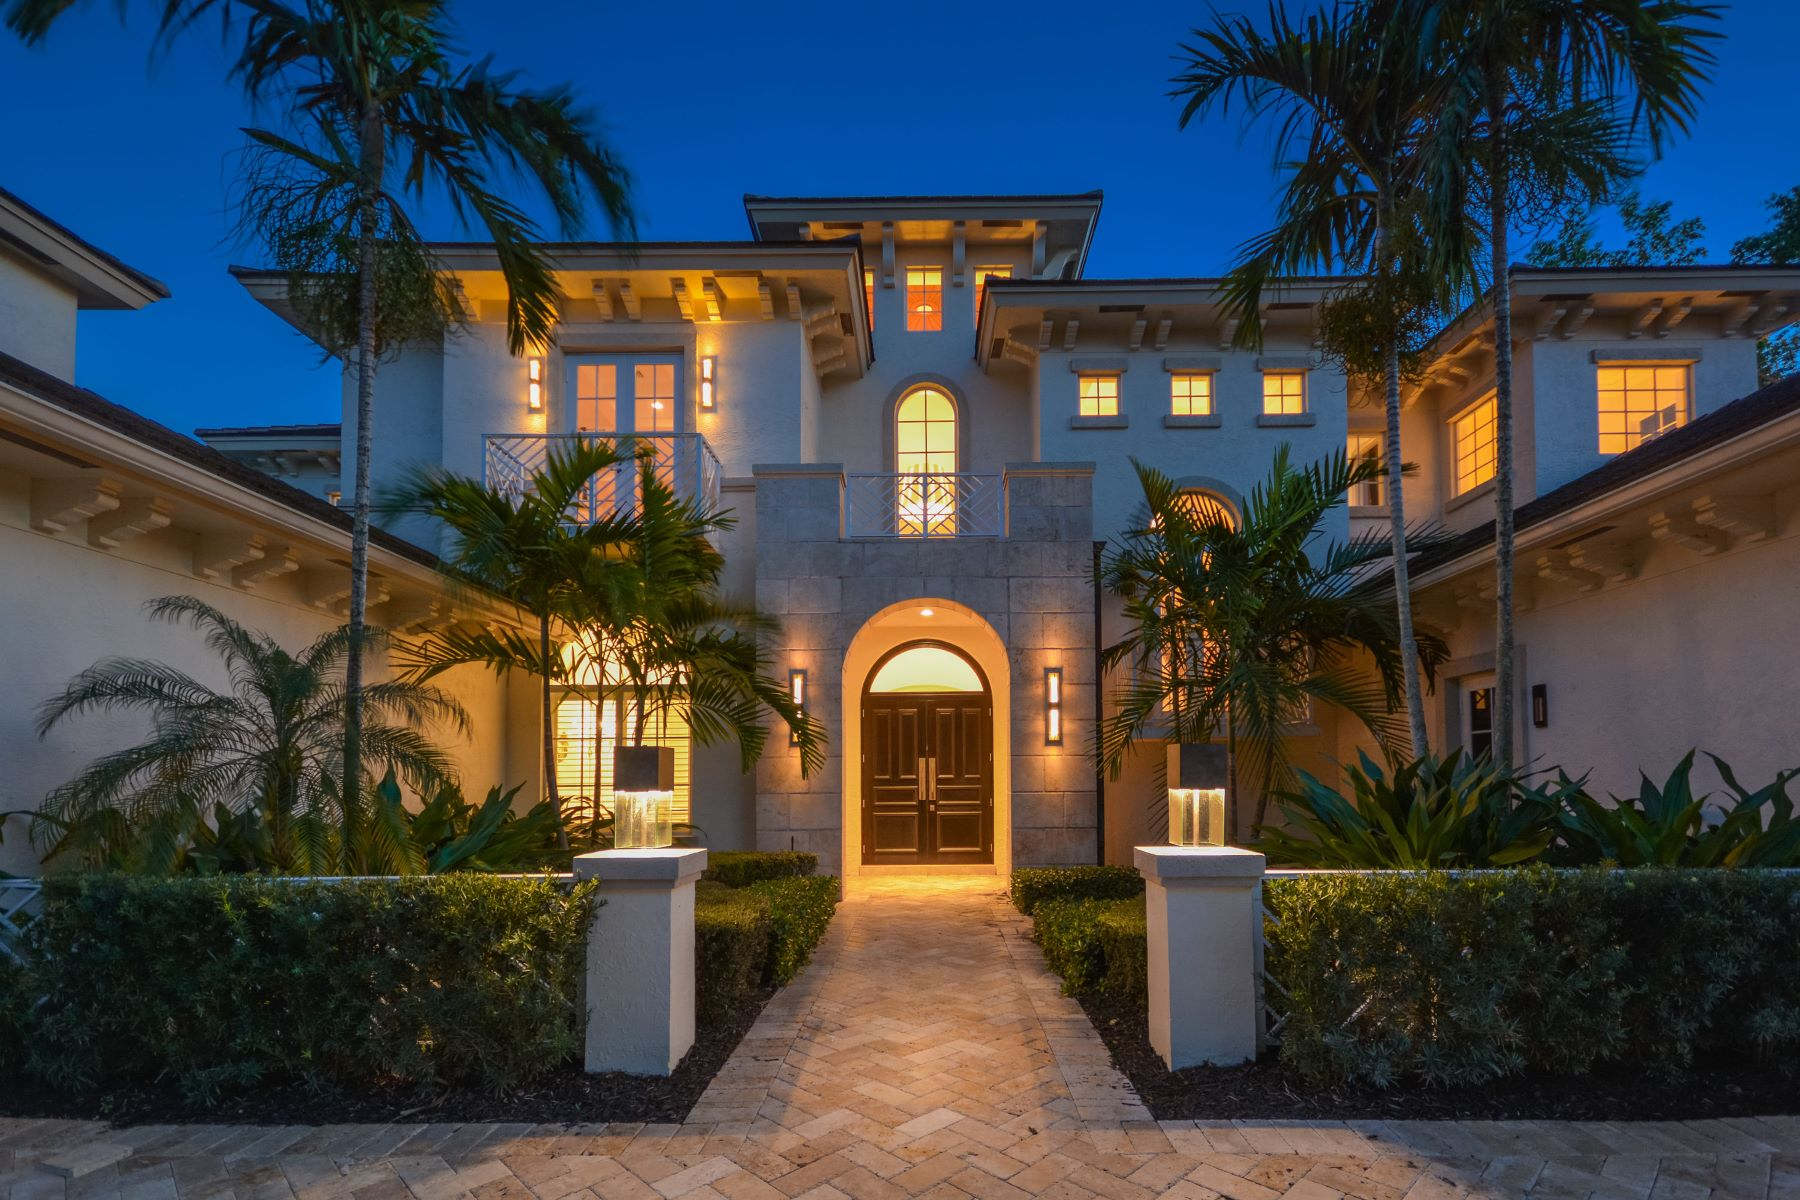 Single Family Home for Active at 7774 Charney Lane 7774 Charney Lane Boca Raton, Florida 33496 United States